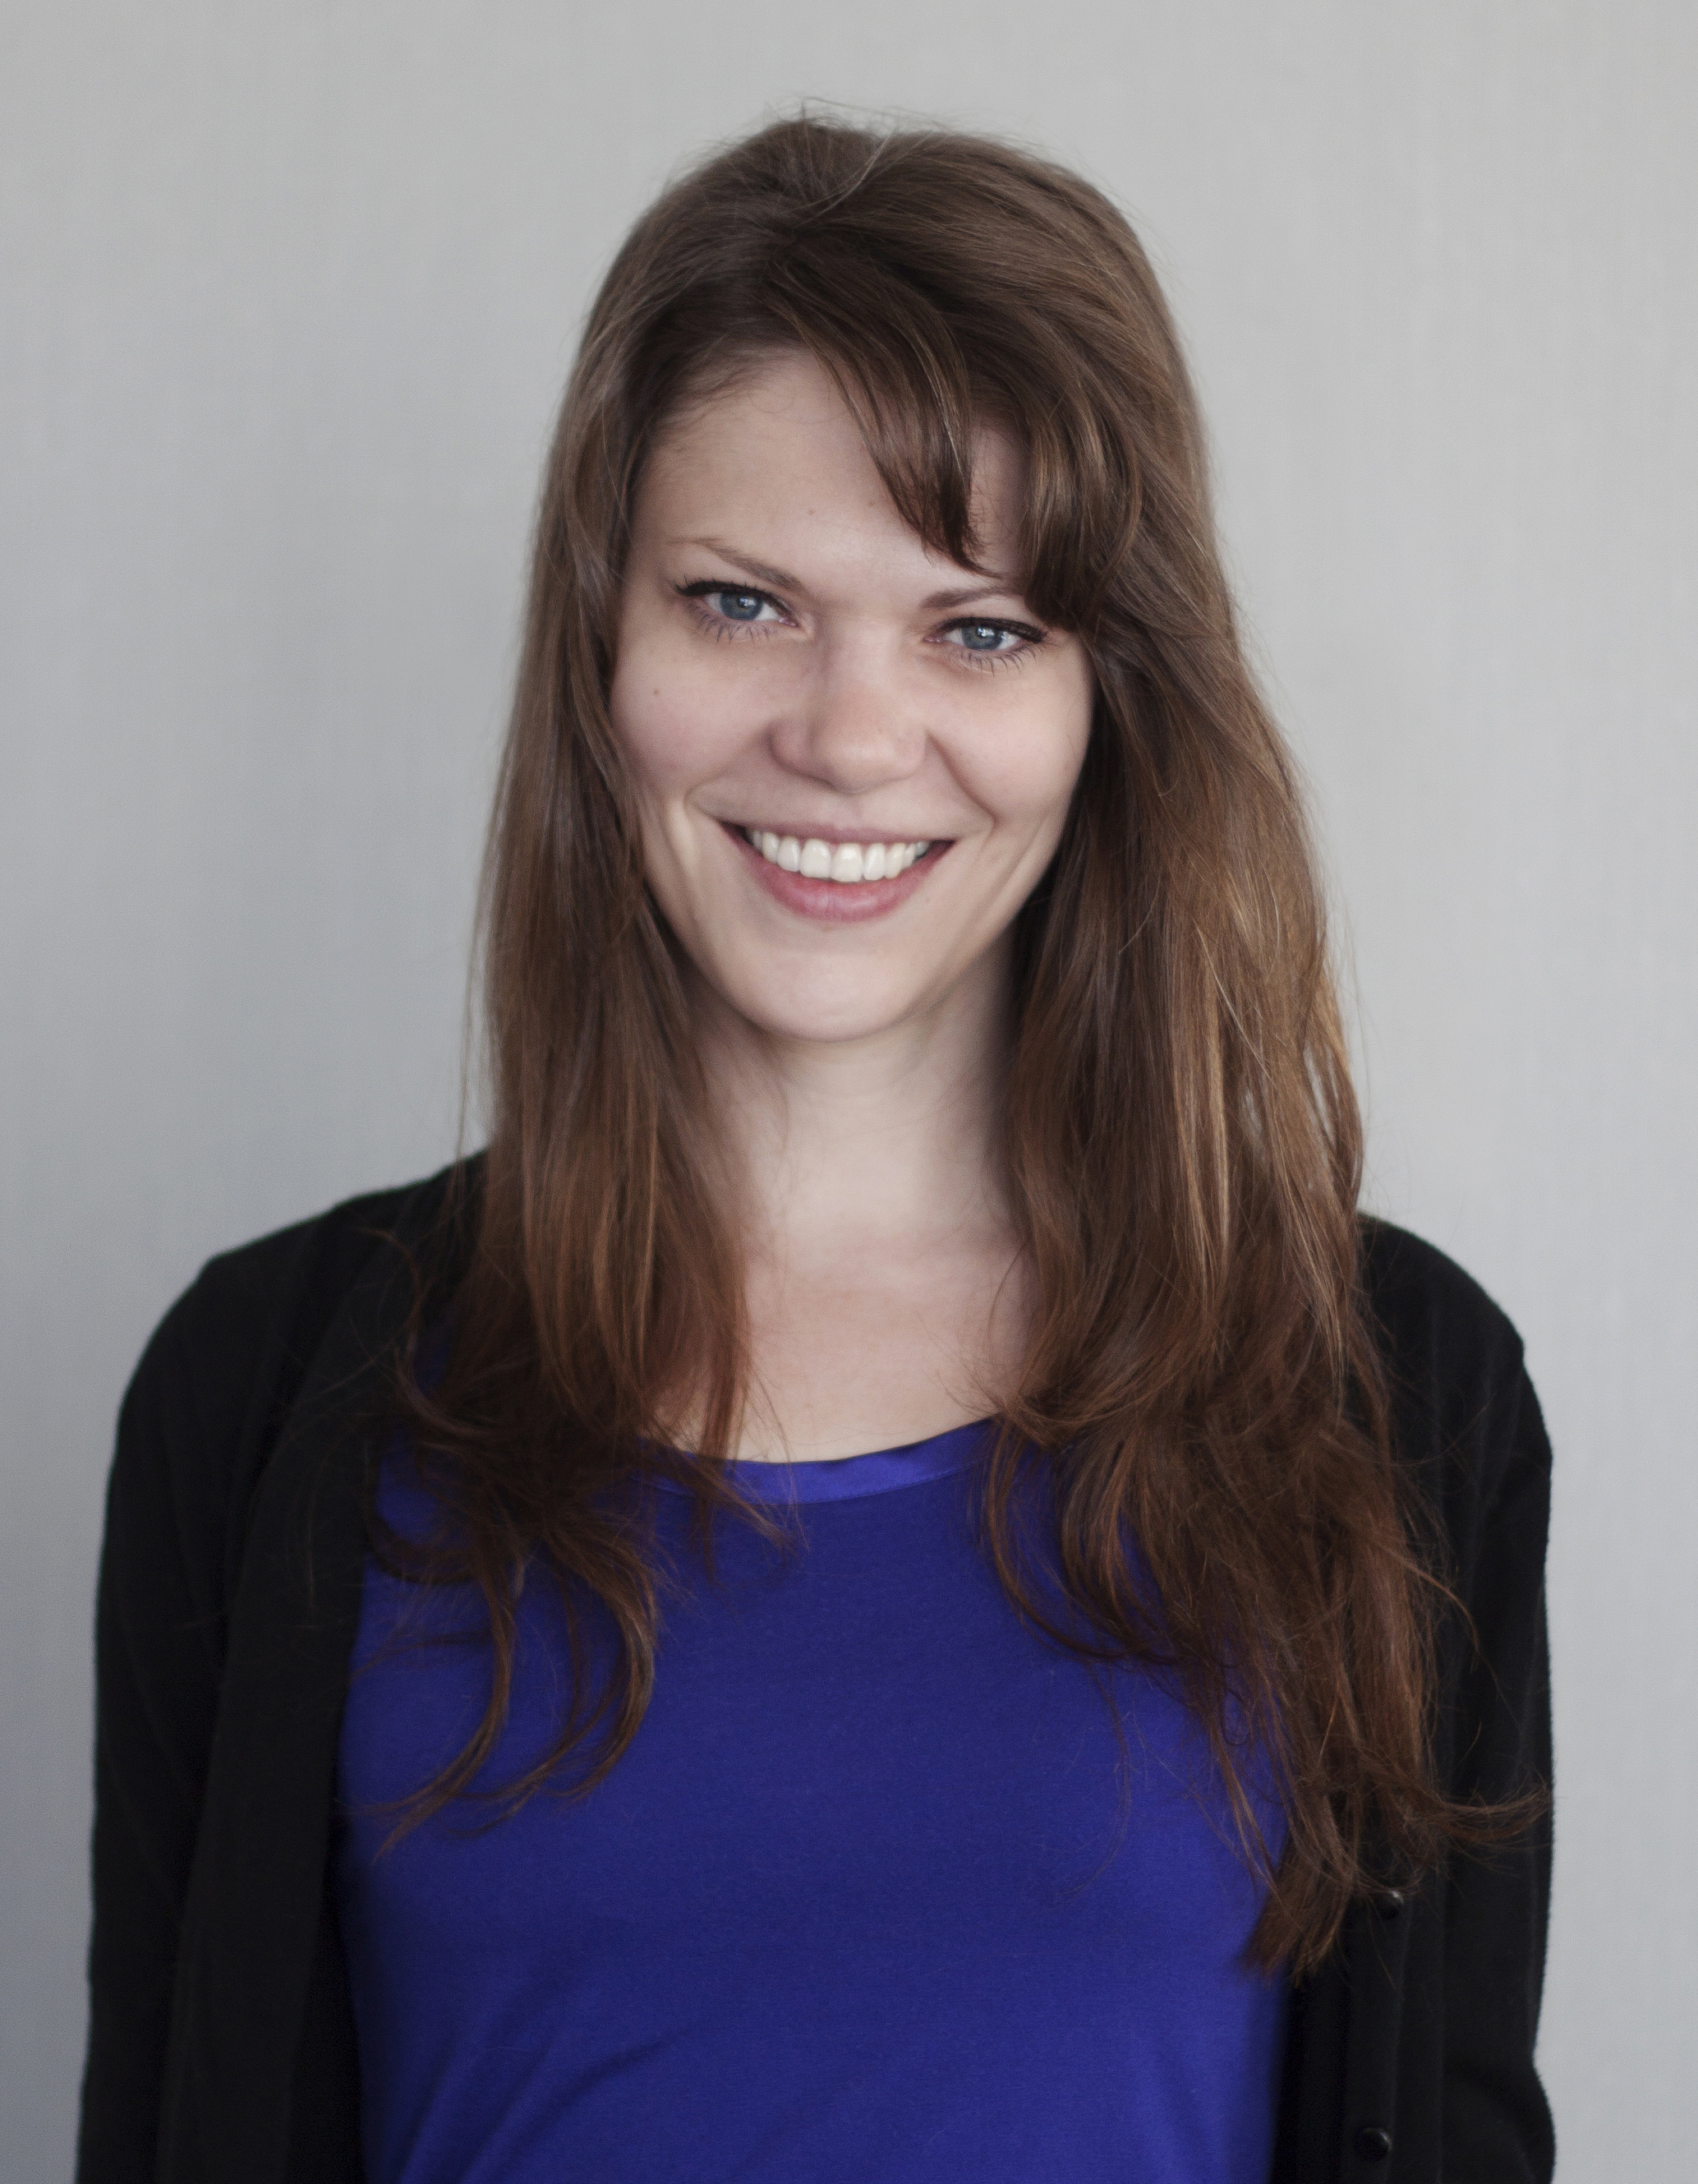 Picture of Hanni Geist, the Information Officer of the IC San Francisco.